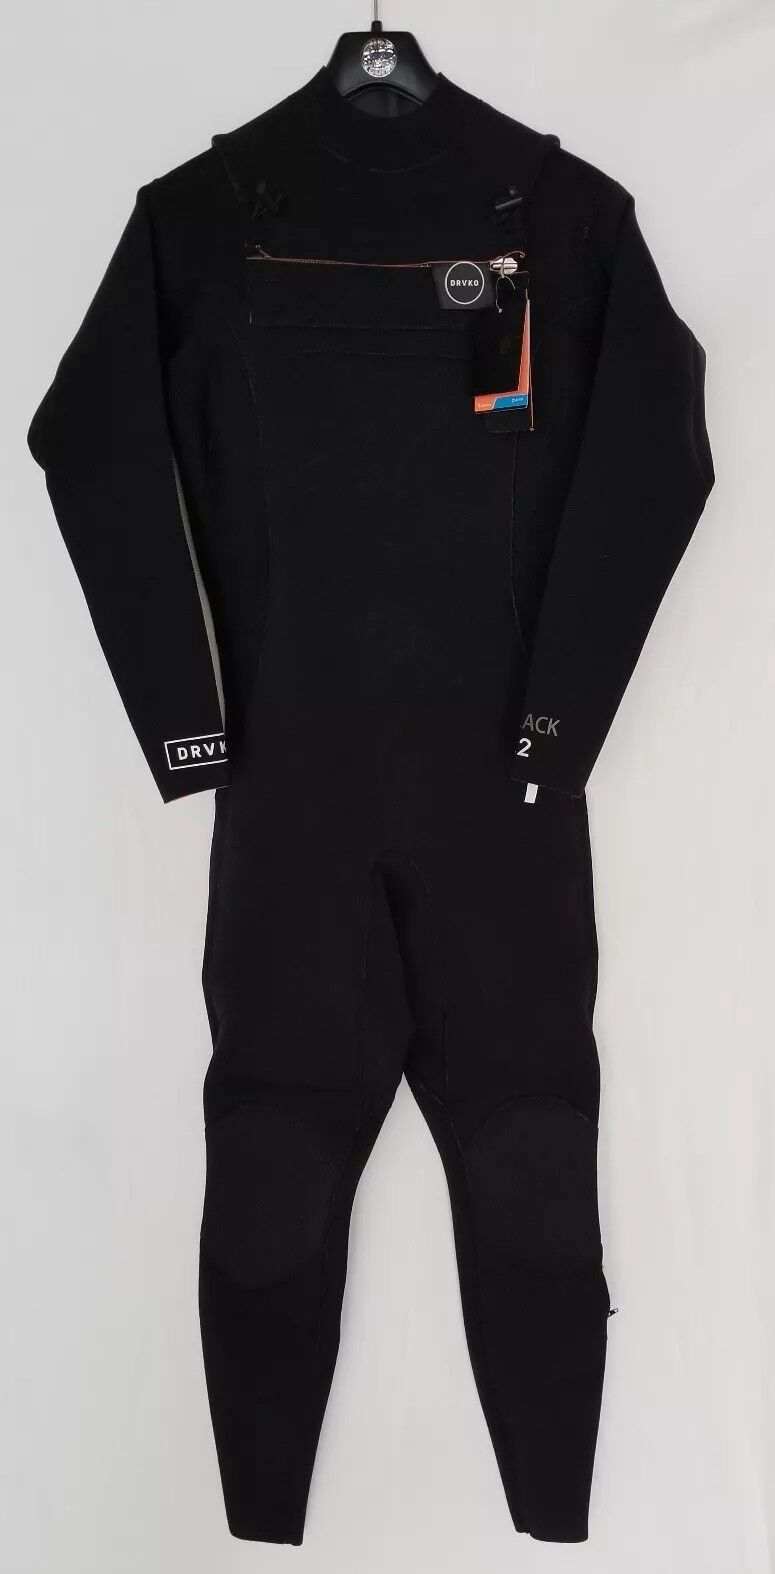 Derevko Fullsuit Wetsuit XL 4 3 NWT Buttery Warm Comfortable. NEW. Solid suit